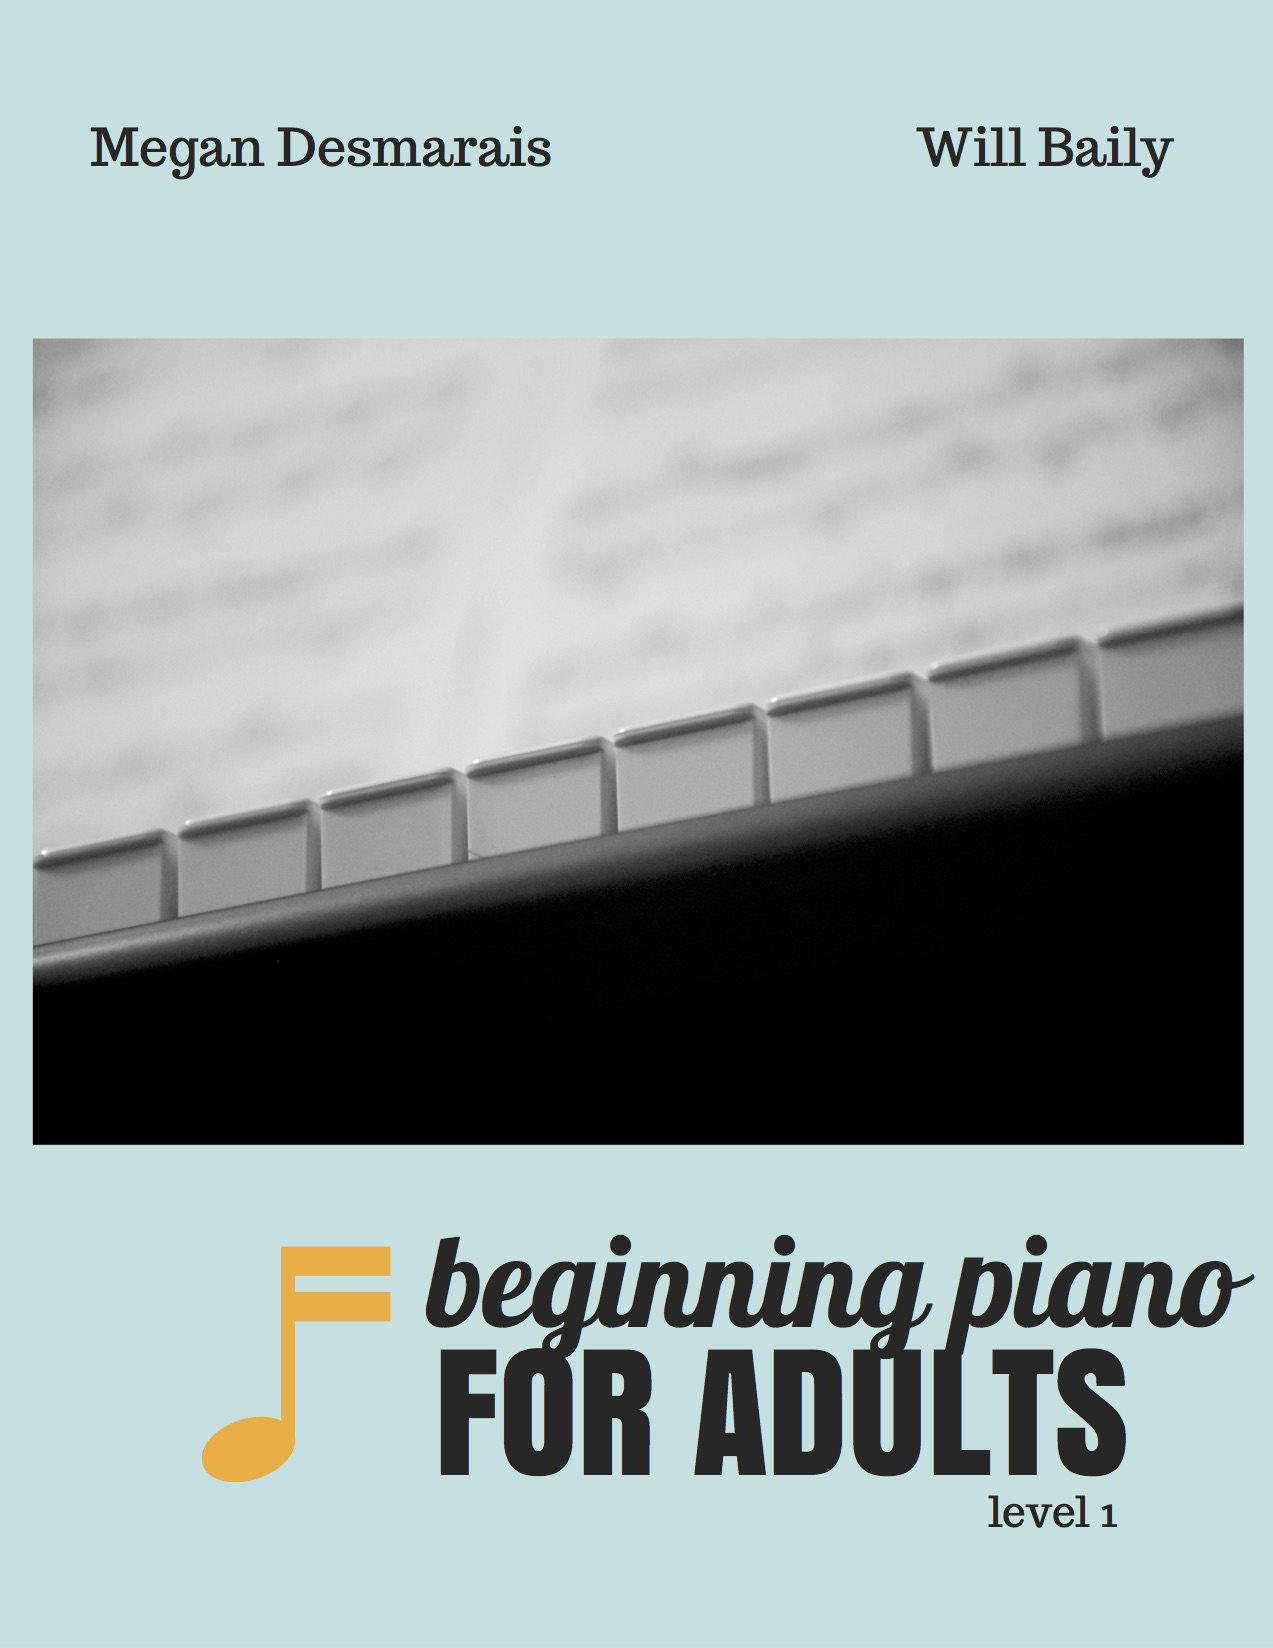 Beginning Piano For Adults Image